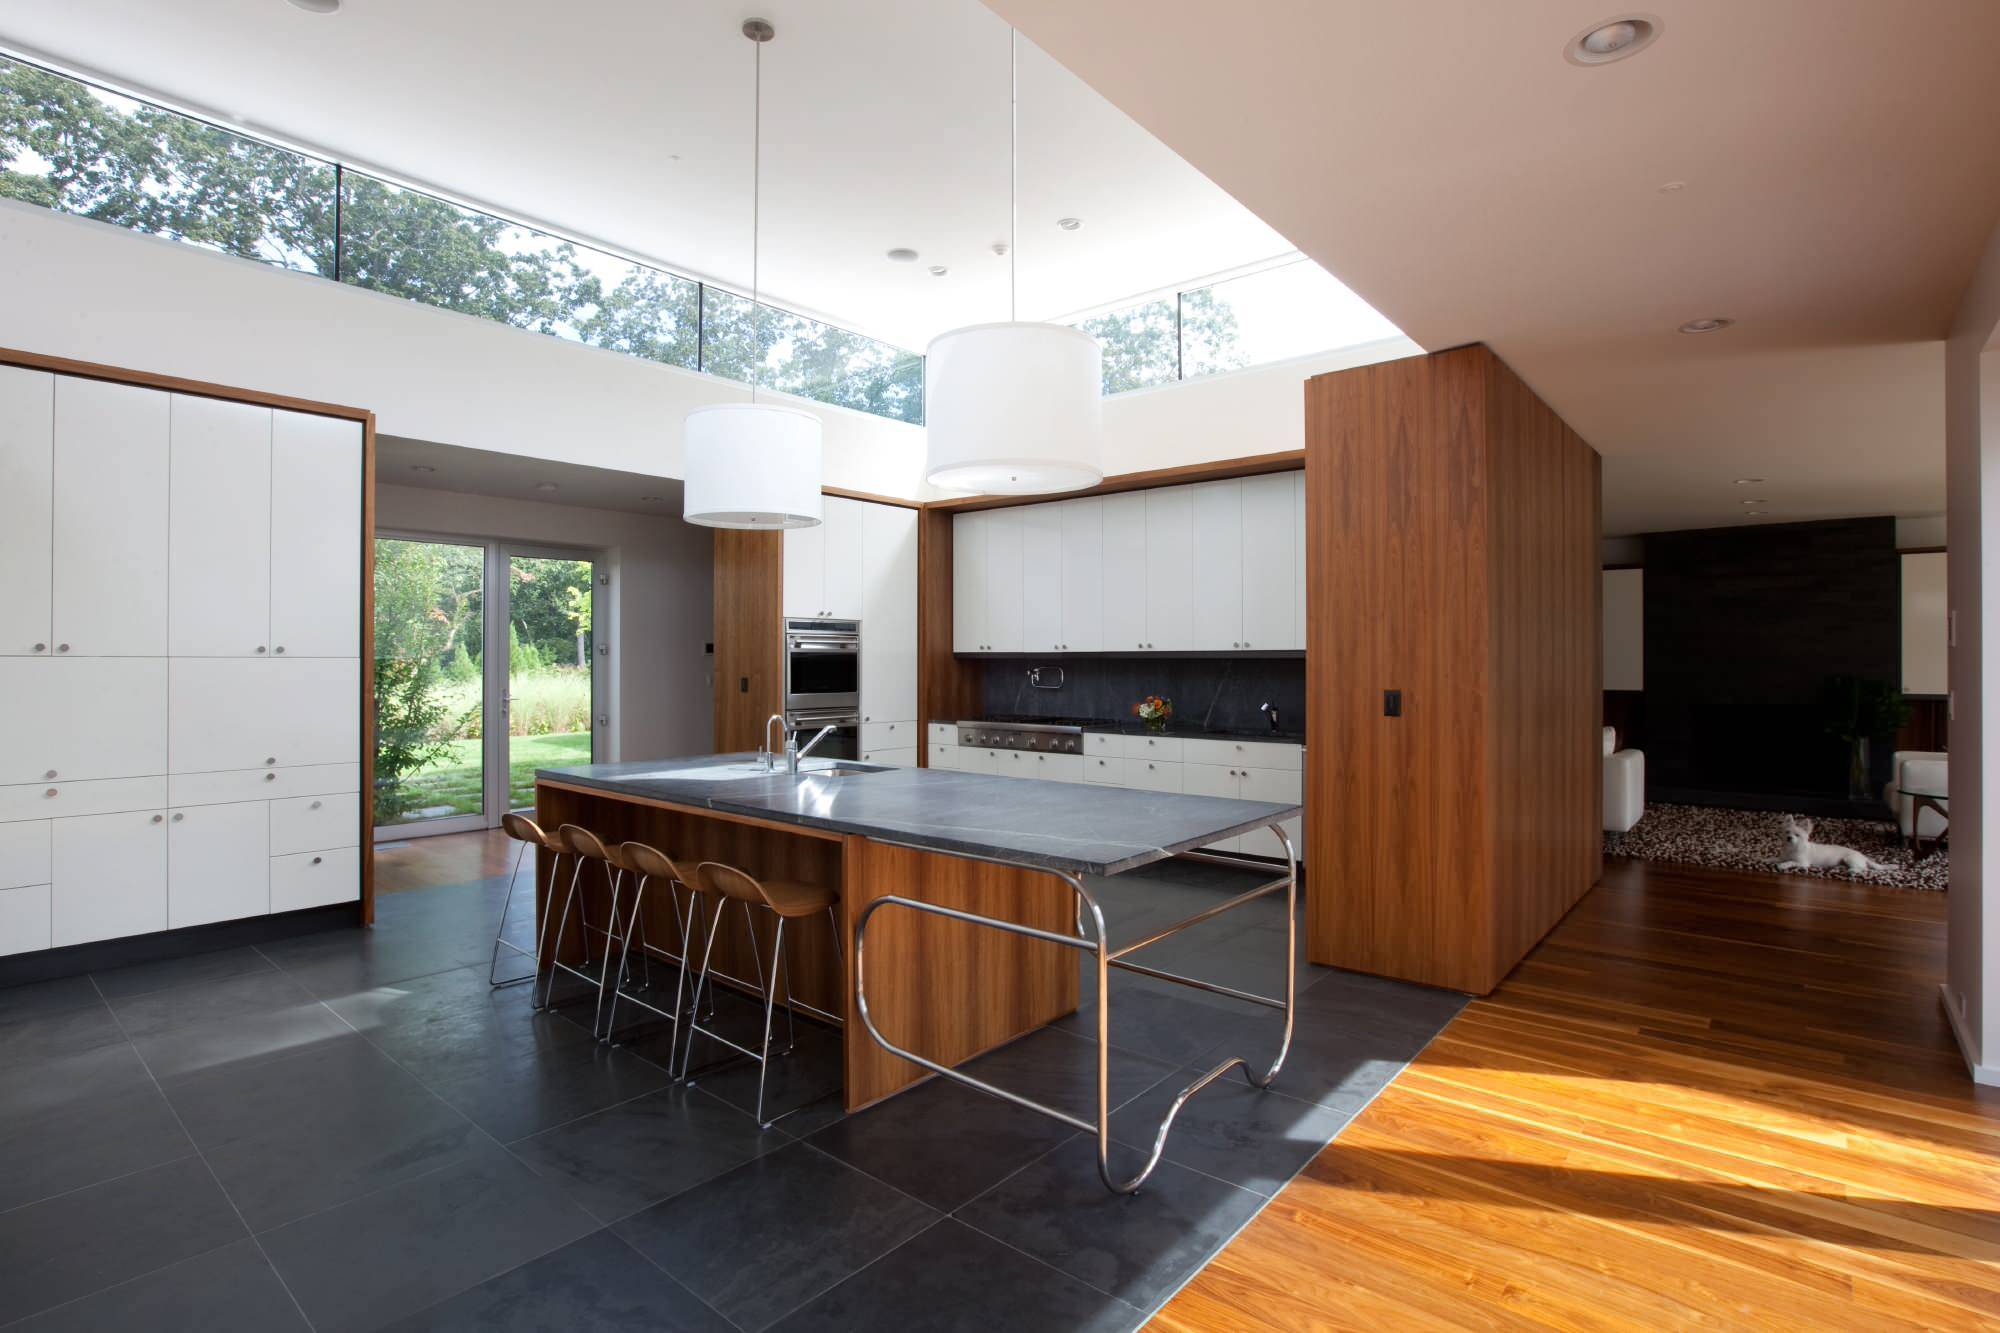 Finding-the-right-height-and-direction-for-clerestory-windows-in-your-modern-home-23407